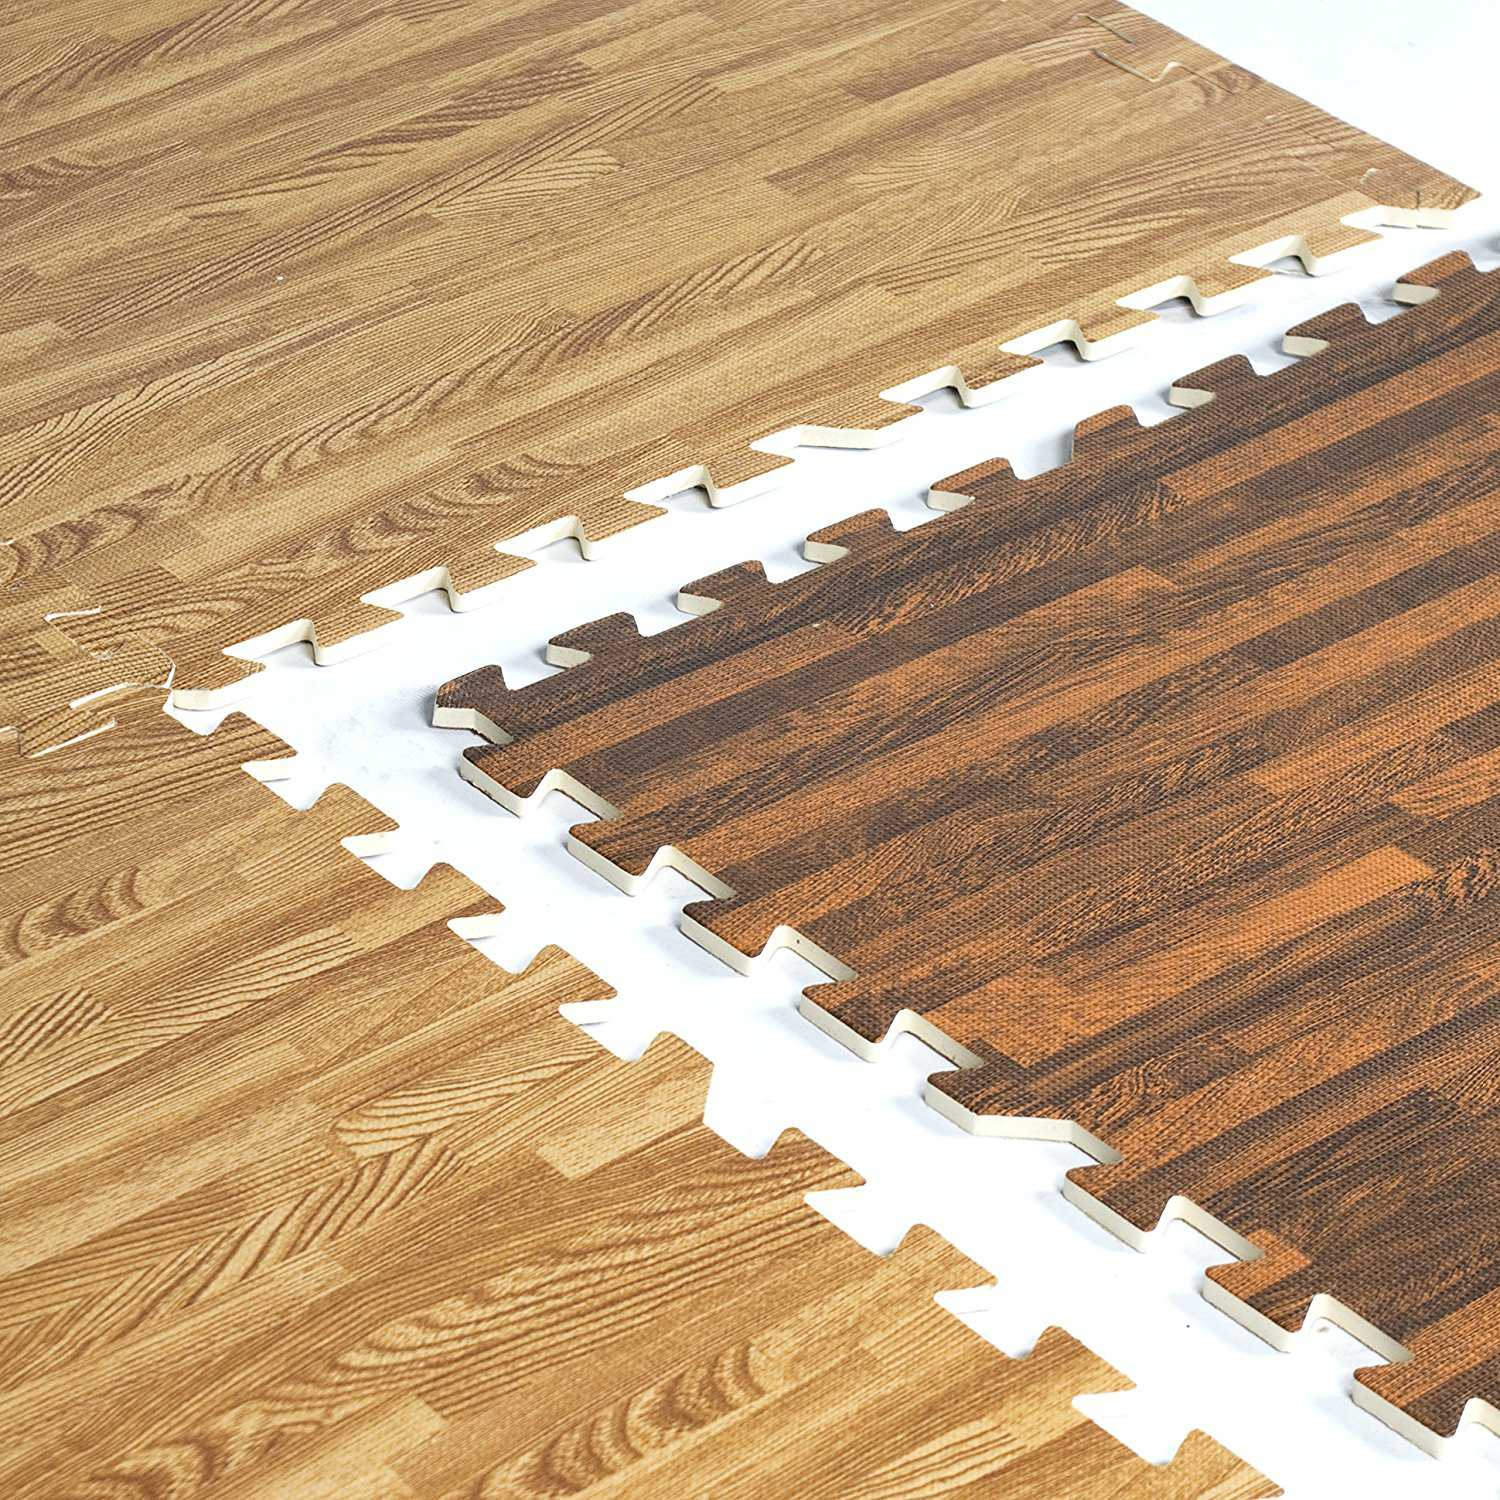 CAP 6-PIECE DUAL SIDED FOAM TILE FLOORING WITH WOOD STYLE PATTERN